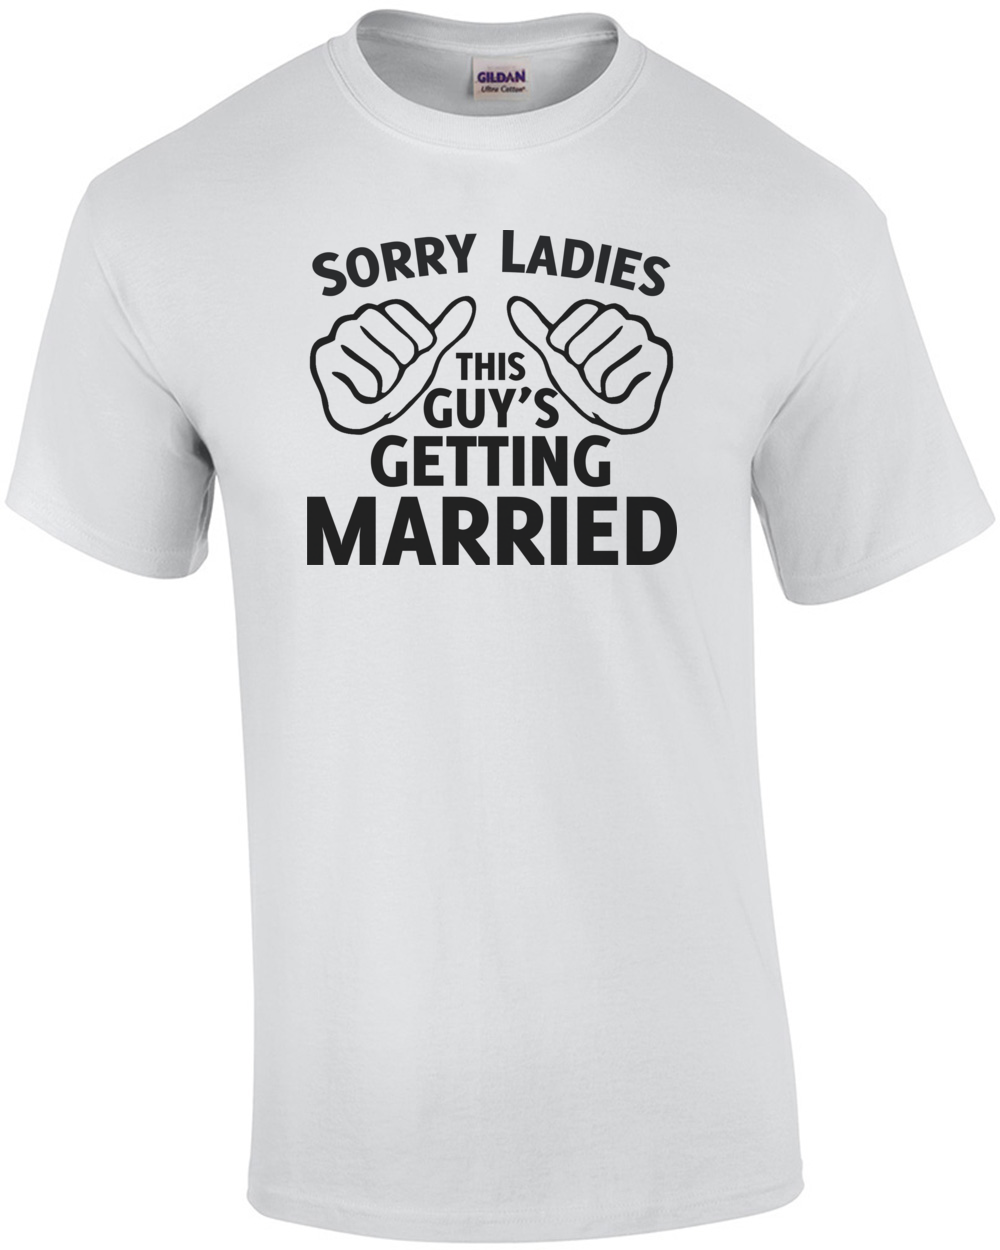 95f6956bd This t-shirt is the perfect choice for the guy who's so excited about  getting married that he wants to shout it out to the world. And for his  happy bachelor ...